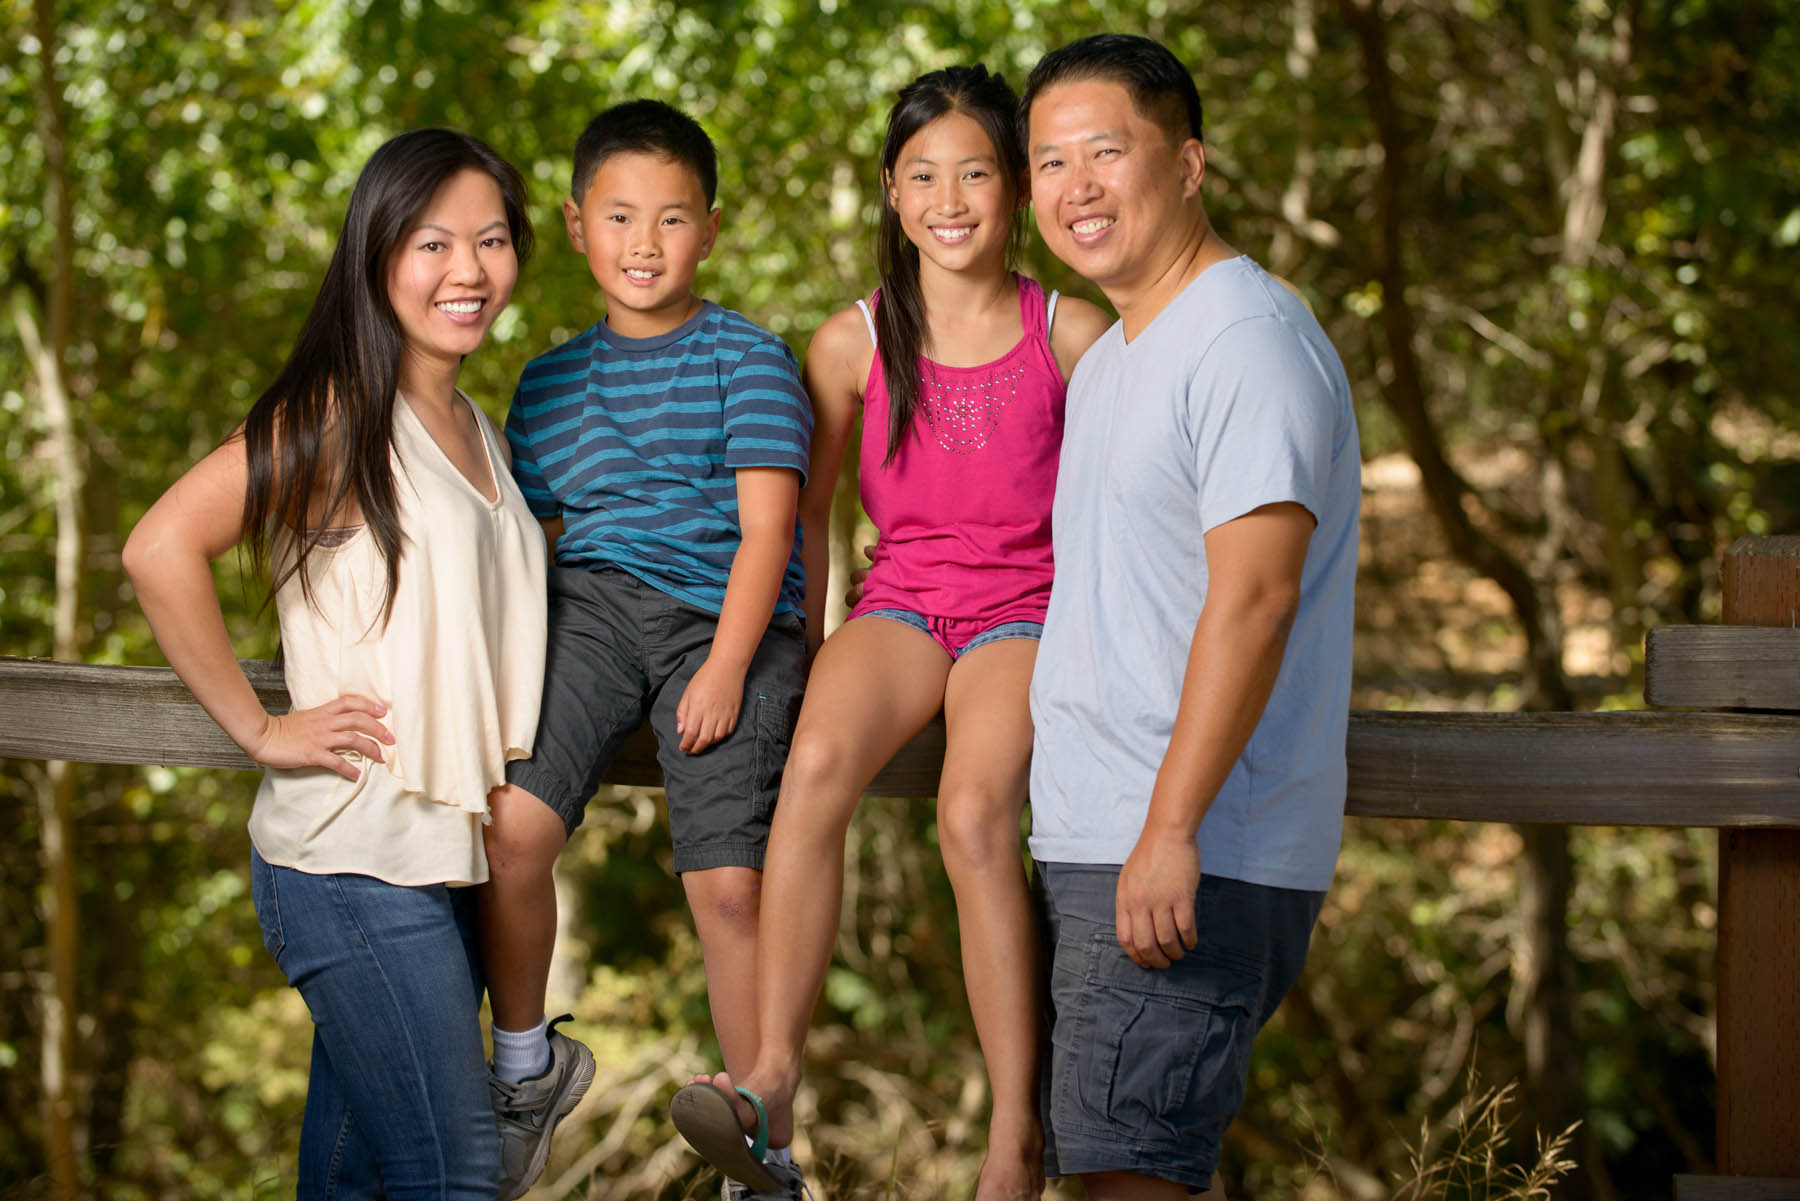 3740_d800b_Hieu_Cindy_and_Kids_Los_Gatos_Private_Residence_and_Vasona_Park_Family_Photography.jpg